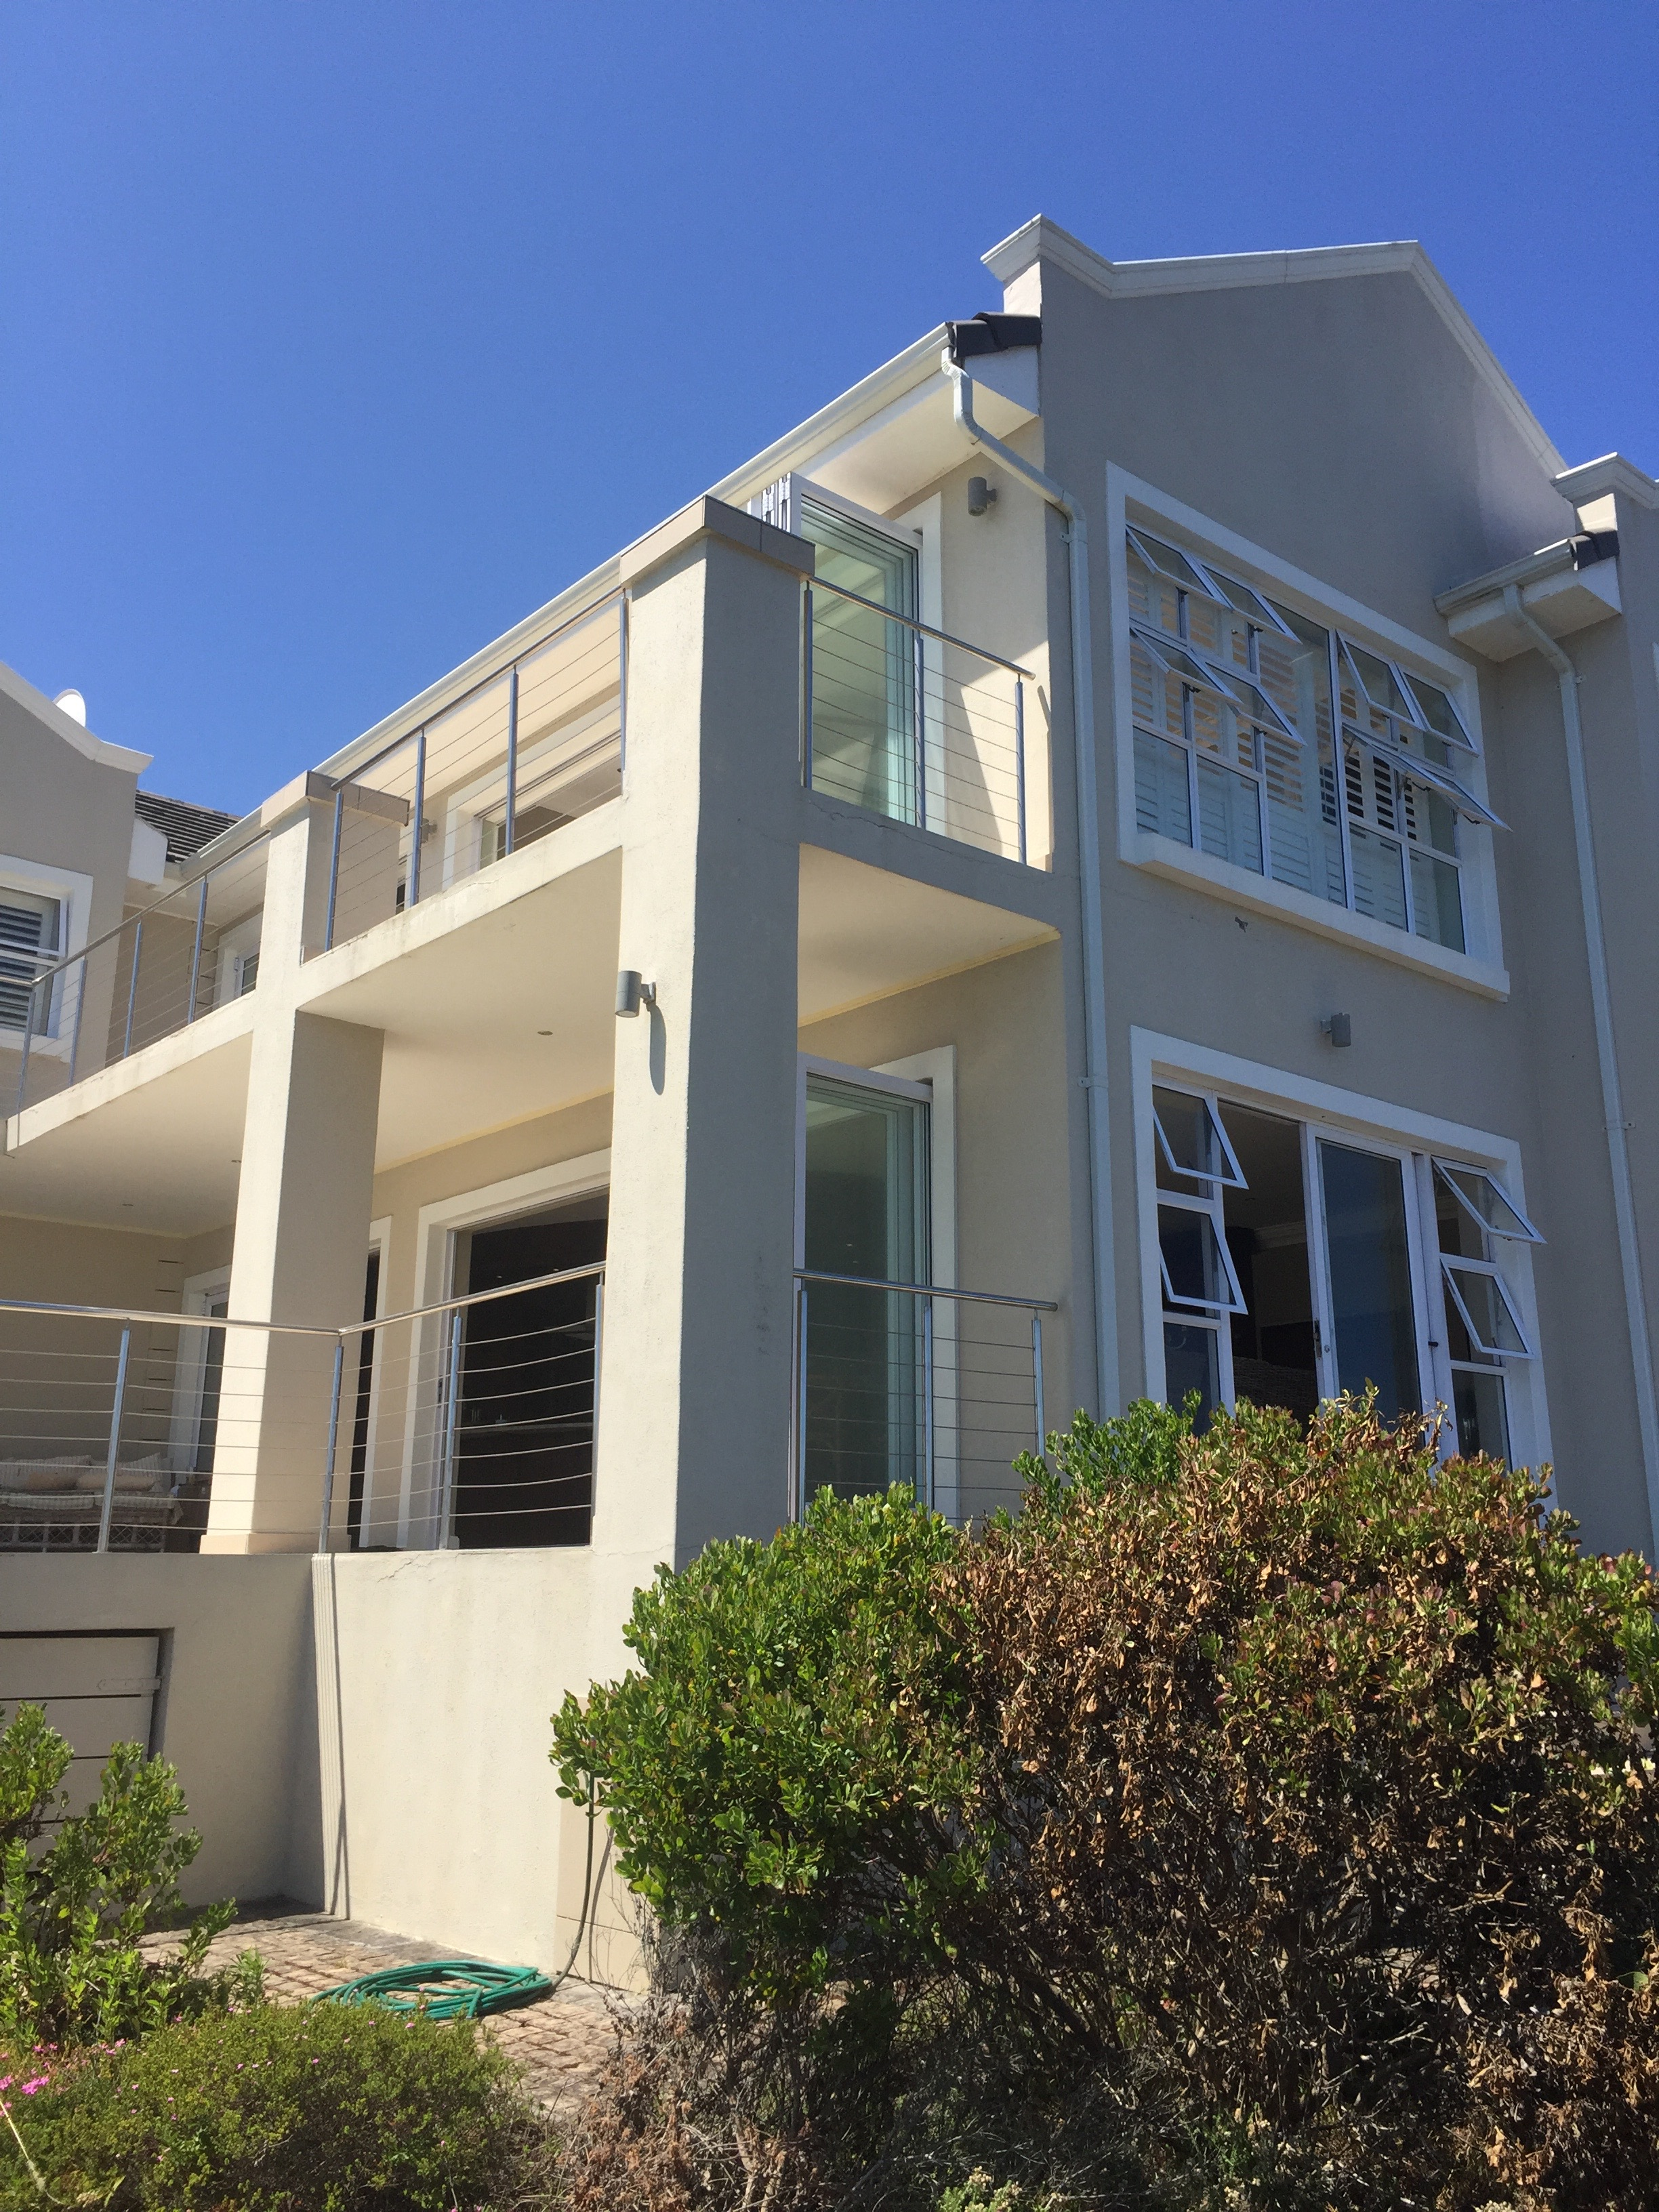 5 Bedroom House,Pinnacle Point, Western Cape